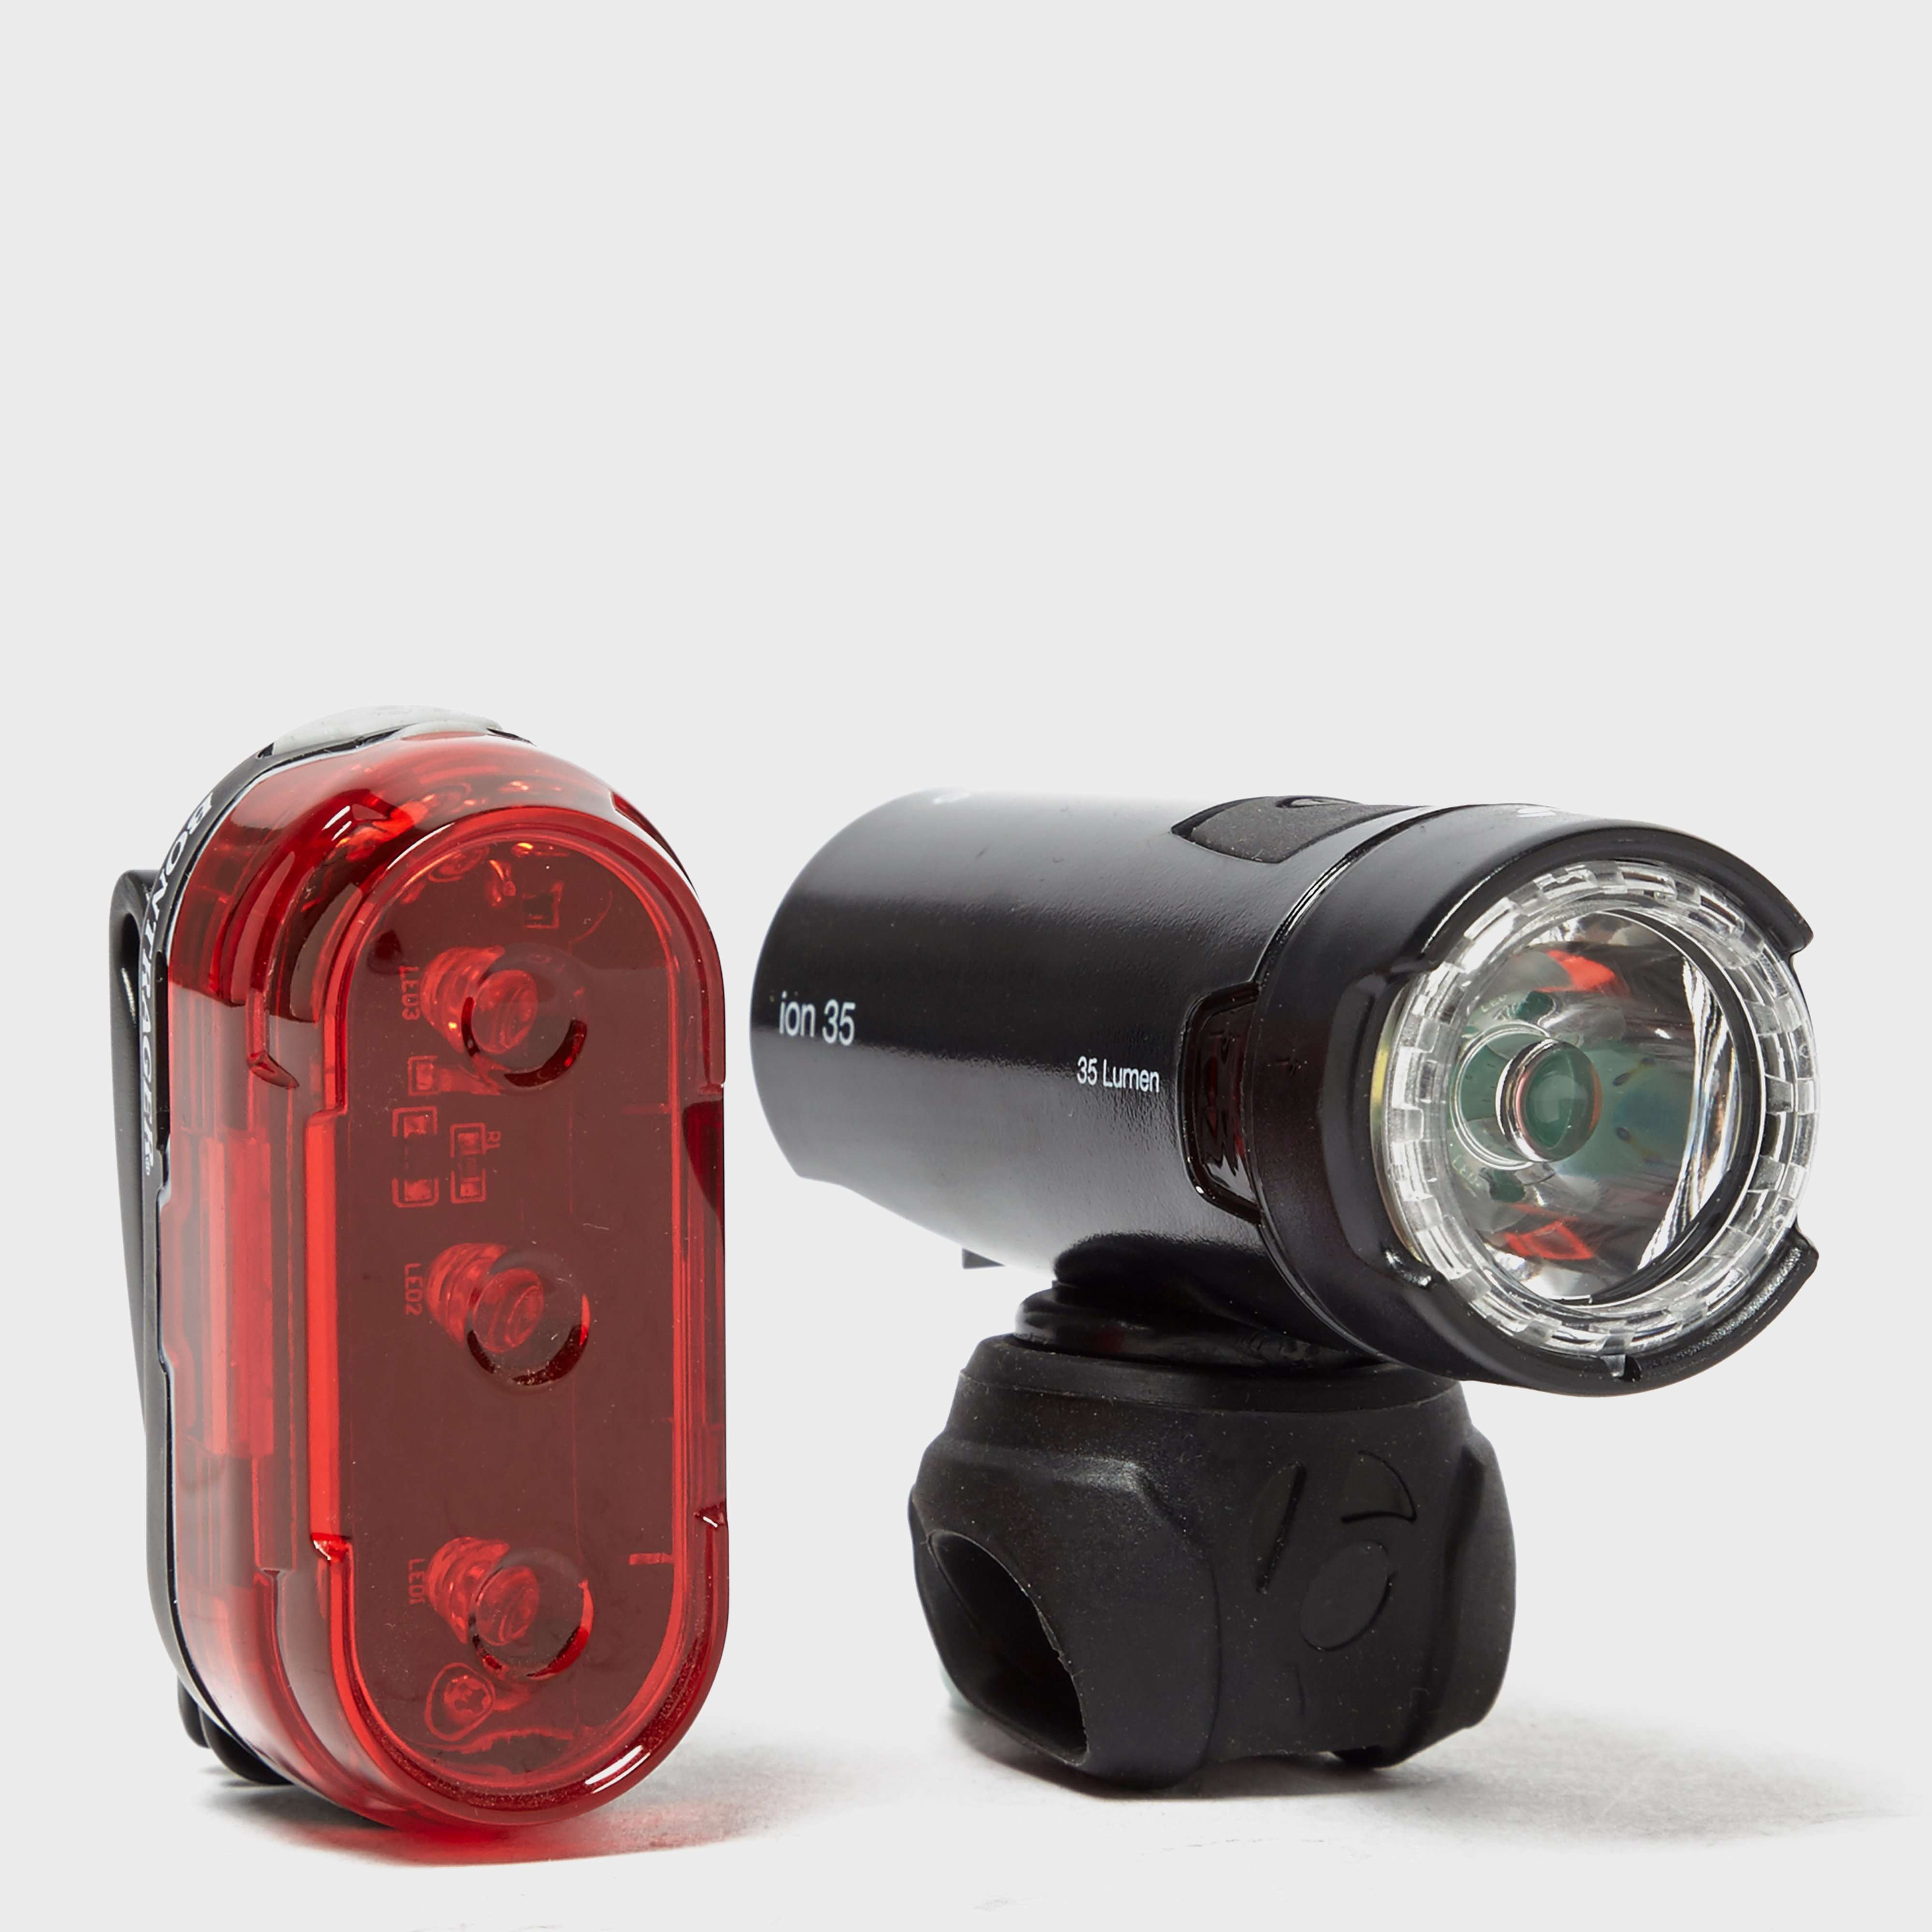 BONTRAGER Ion 35 and Flare 1 Cycle Light